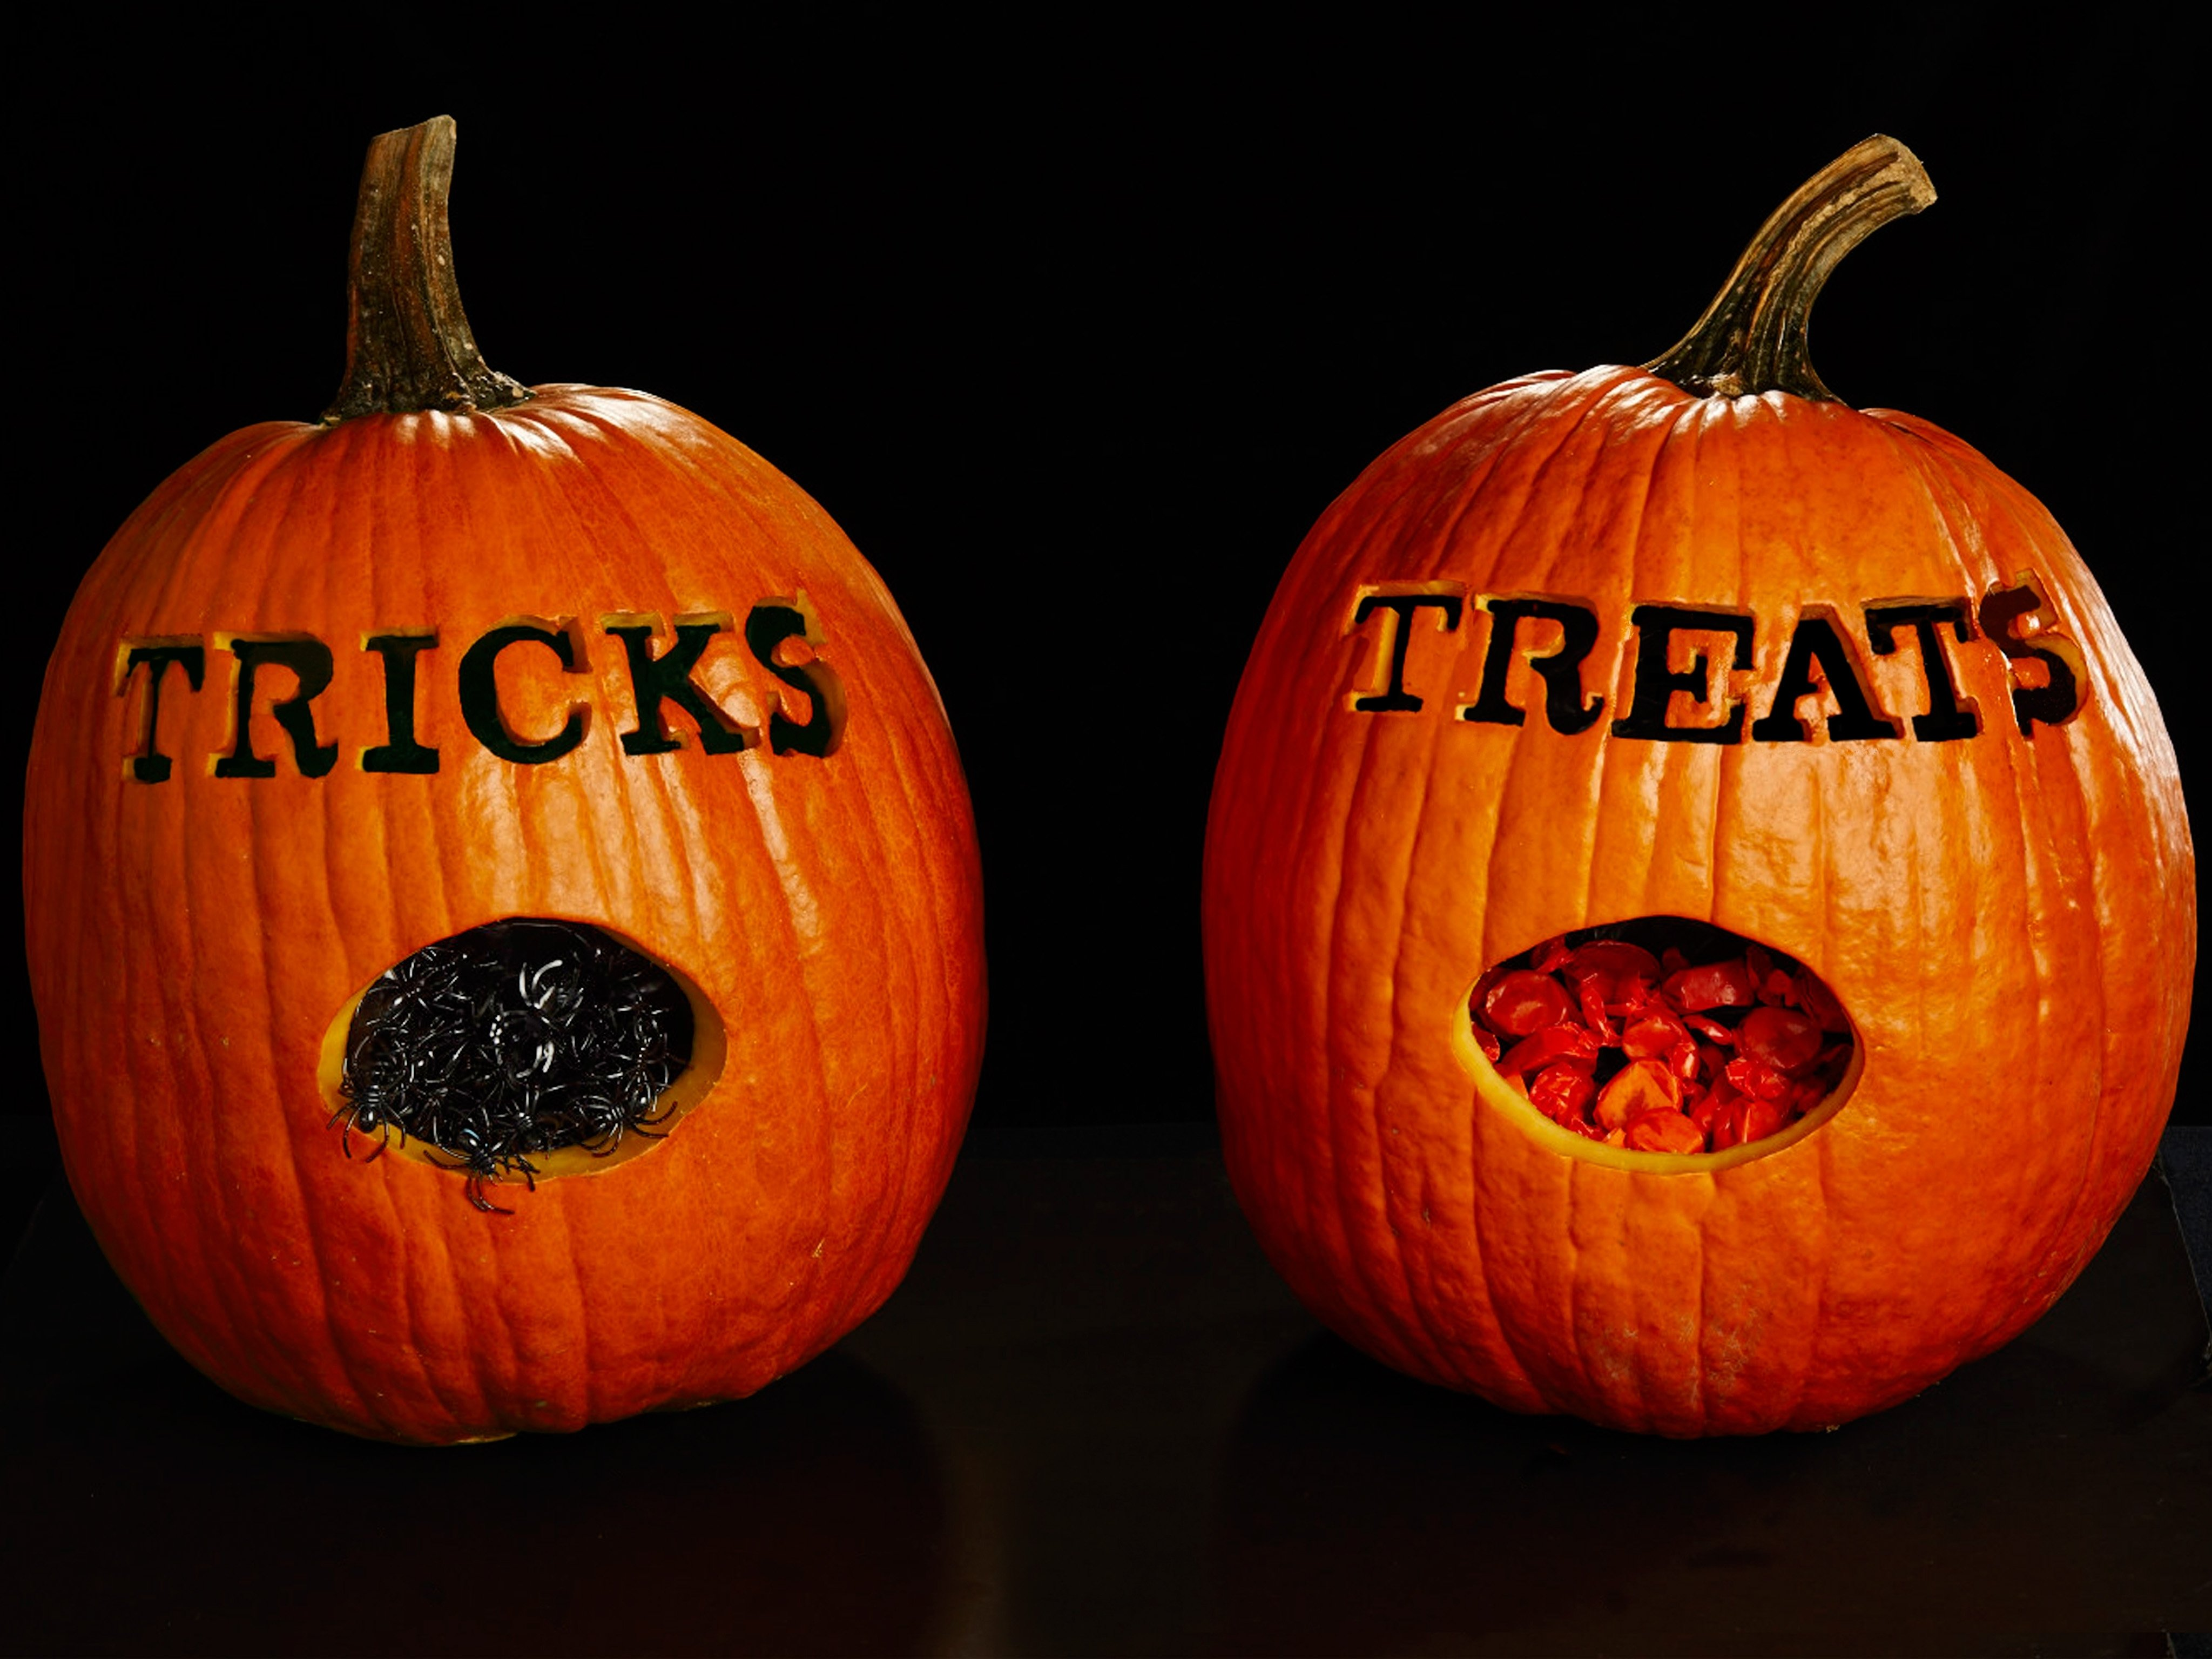 10 Great Good Ideas For Pumpkin Carving top halloween pumpkin carvings to try in 2015 the artistic soul 1 2020